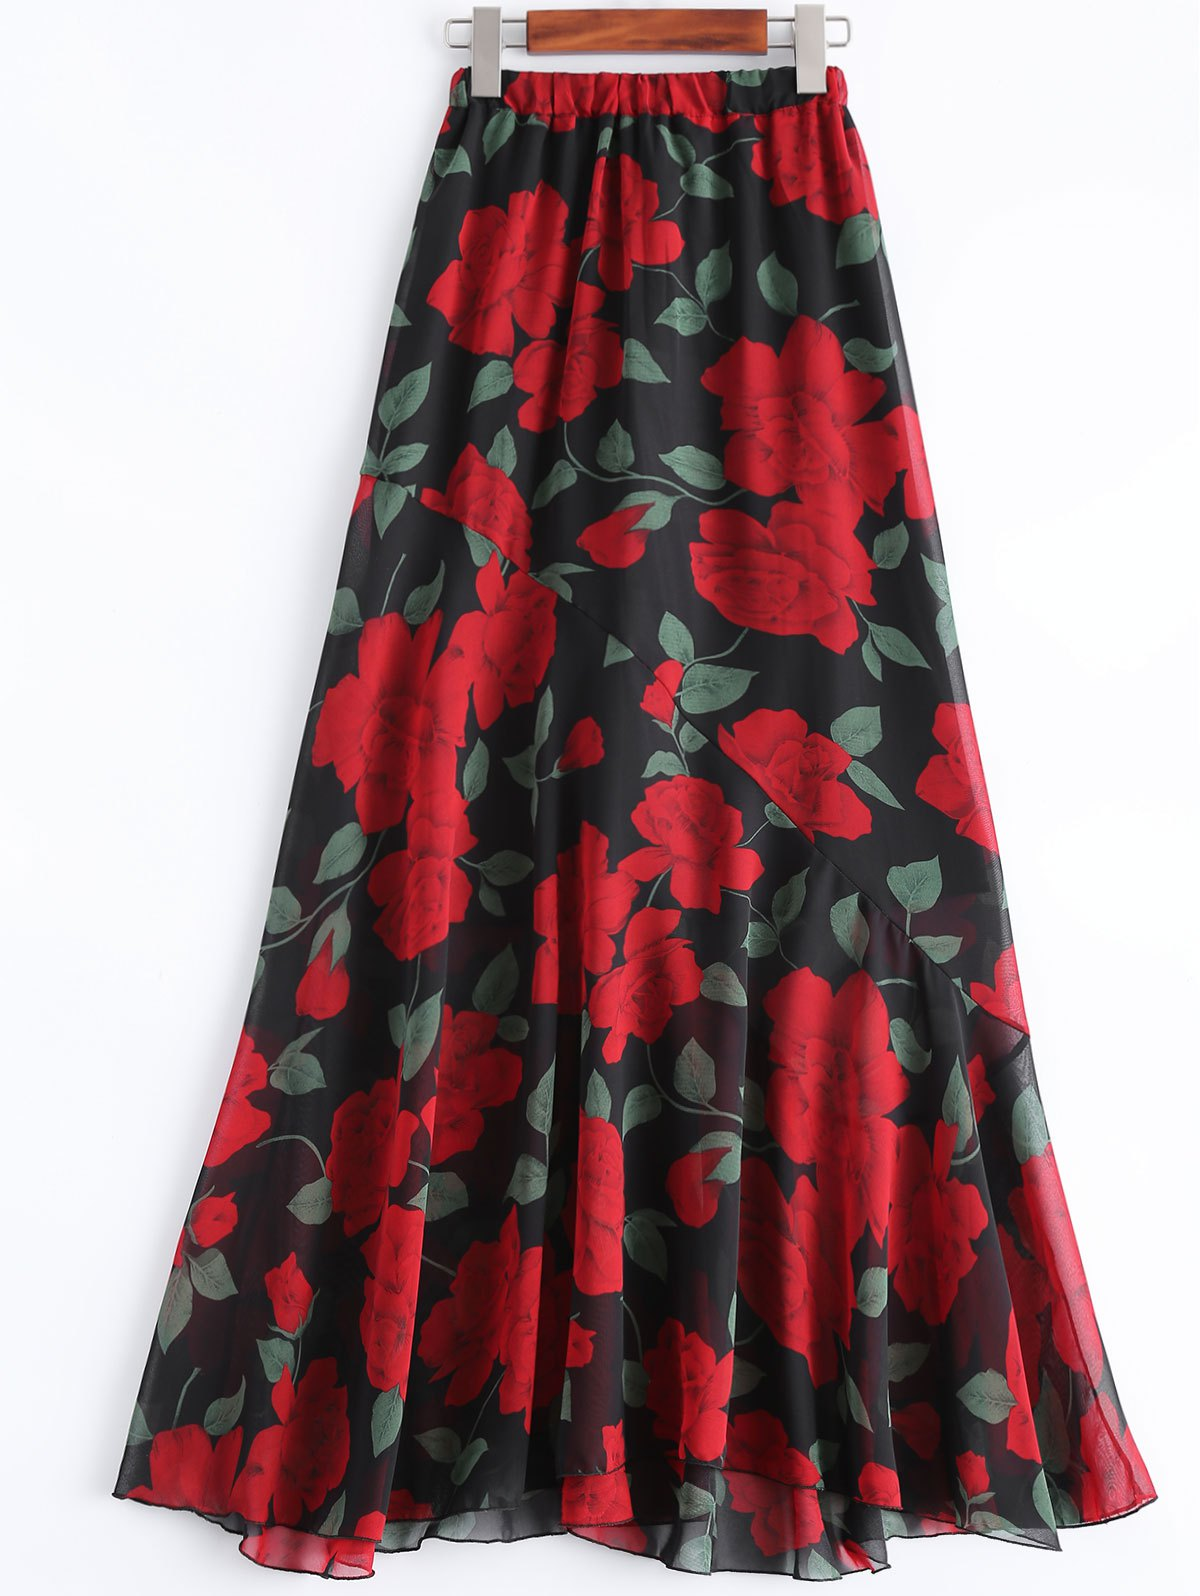 Retro Rose Print High Waist Maxi Chiffon Skirt - RED XL